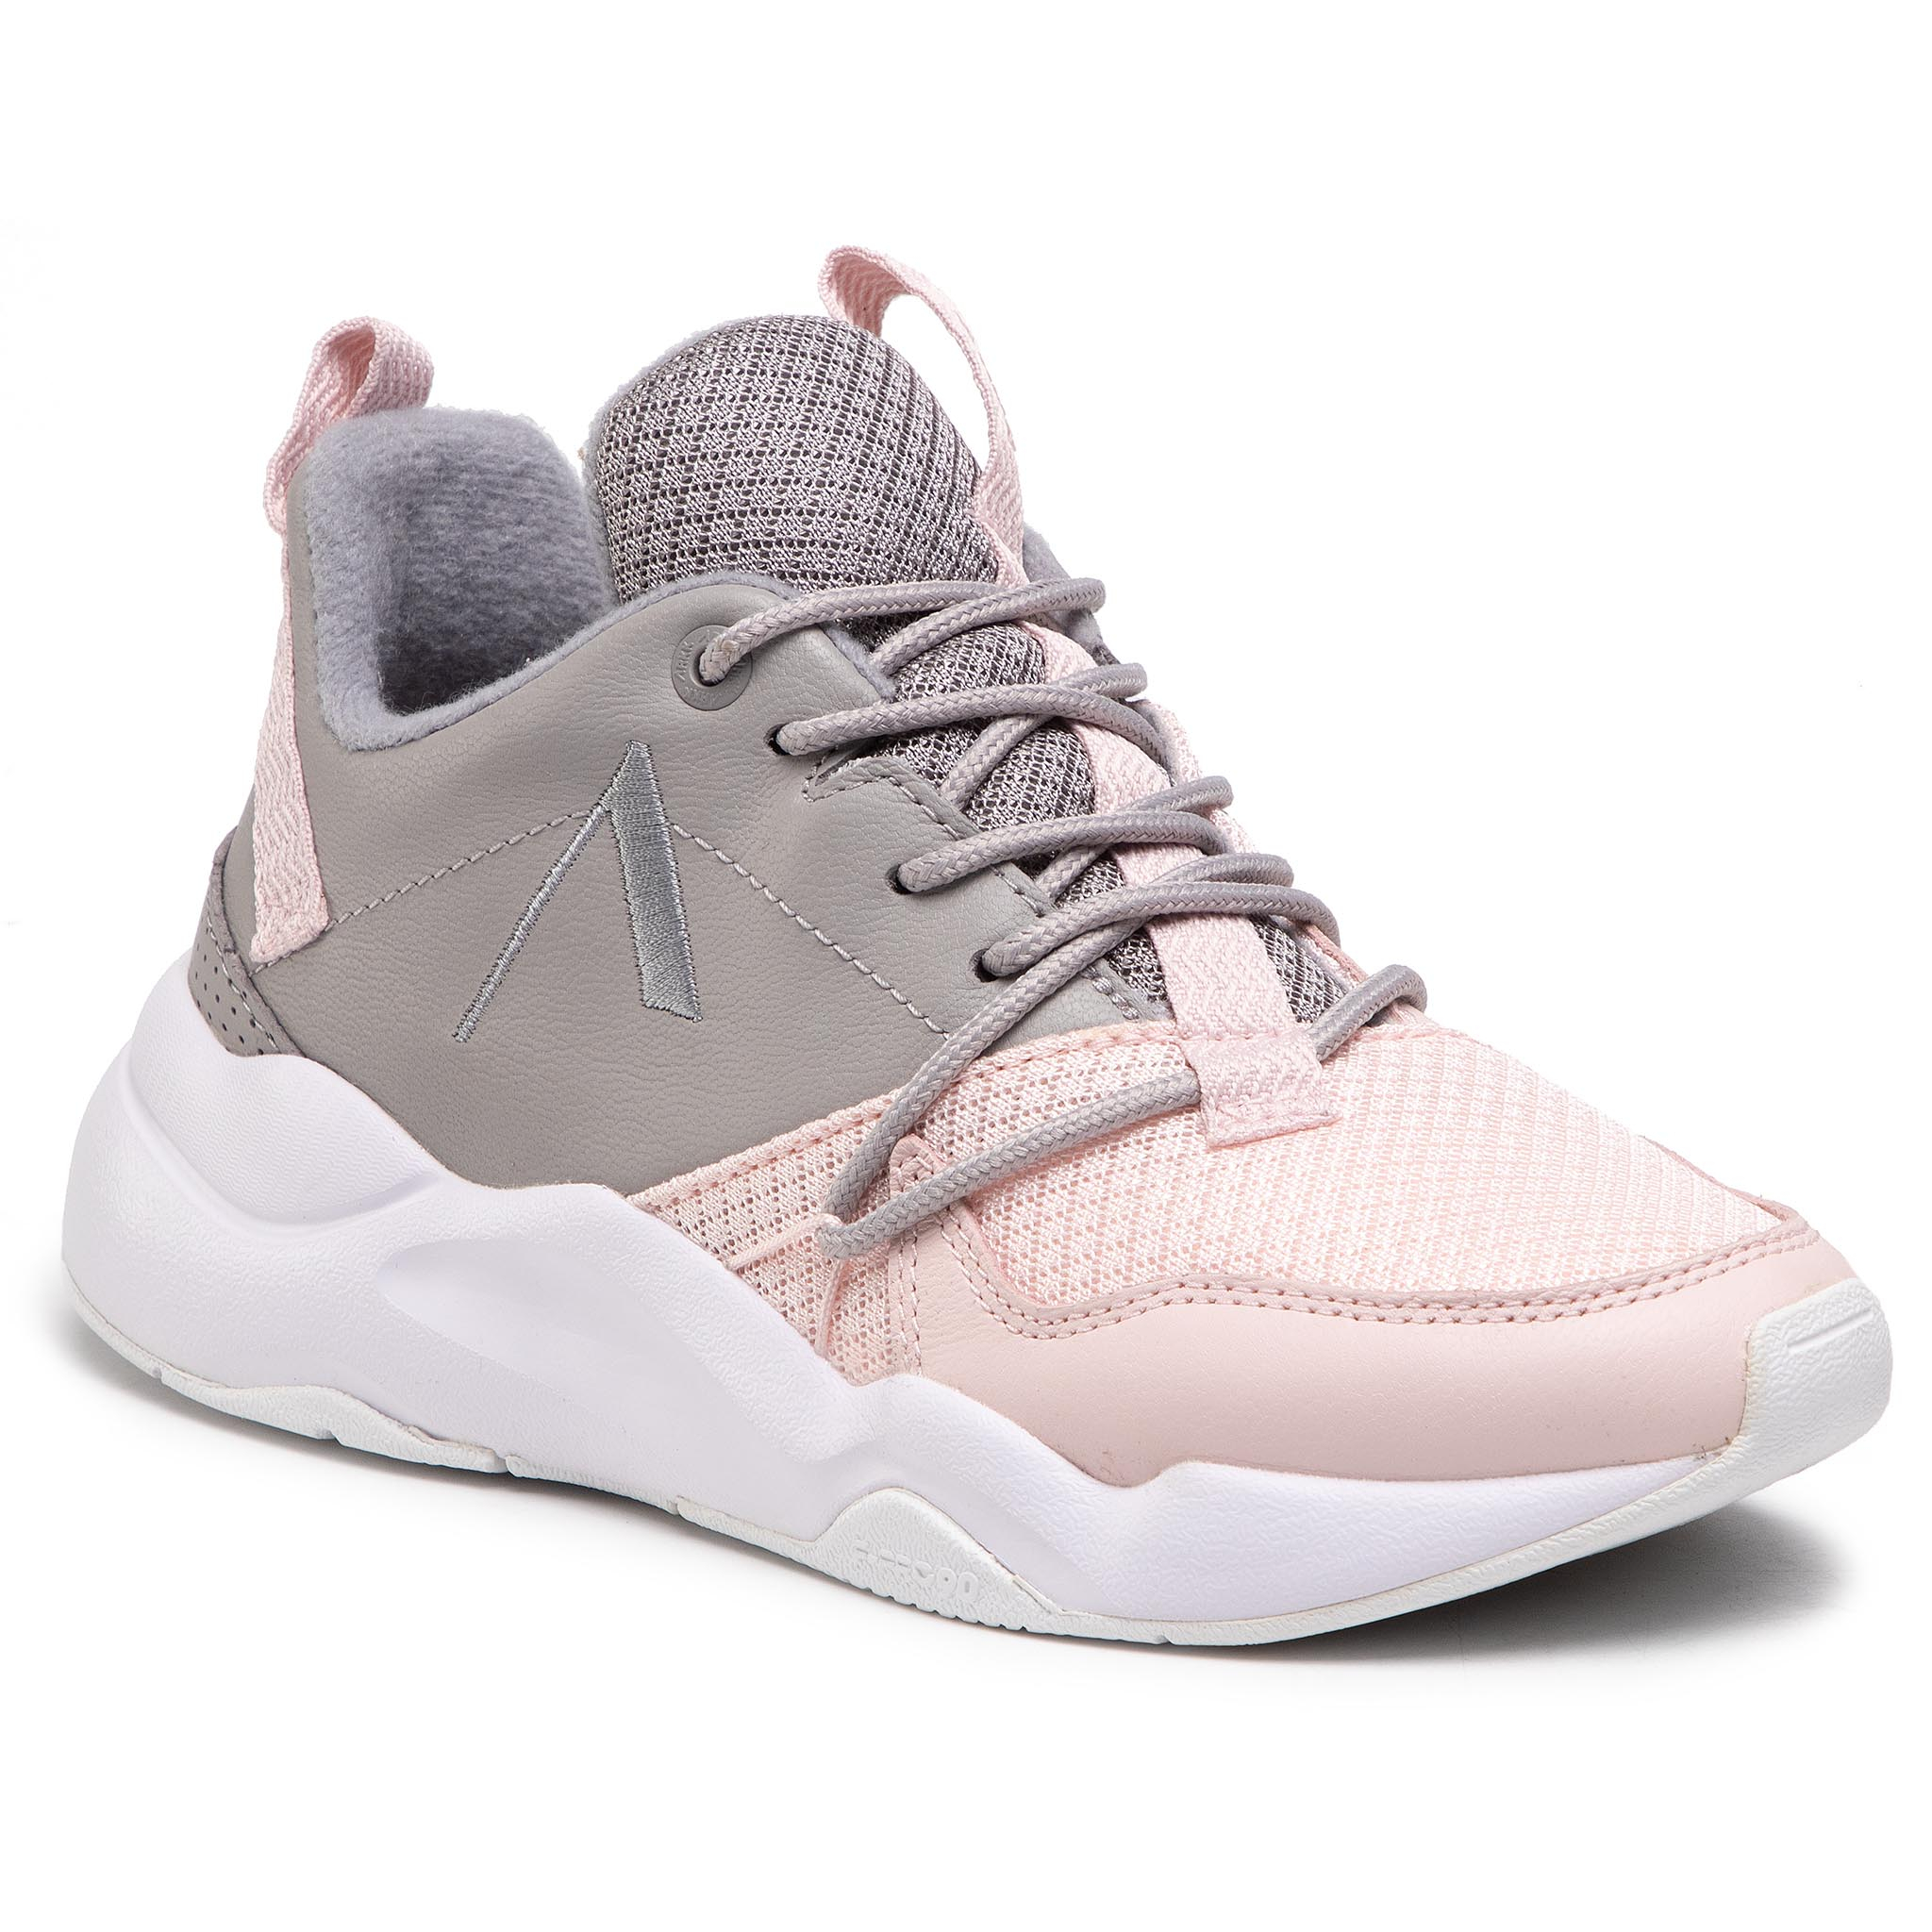 Image of Sneakers ARKK COPENHAGEN - Asymtrix Mesh F-PRO90 ML3015-2149-W Ash Blush